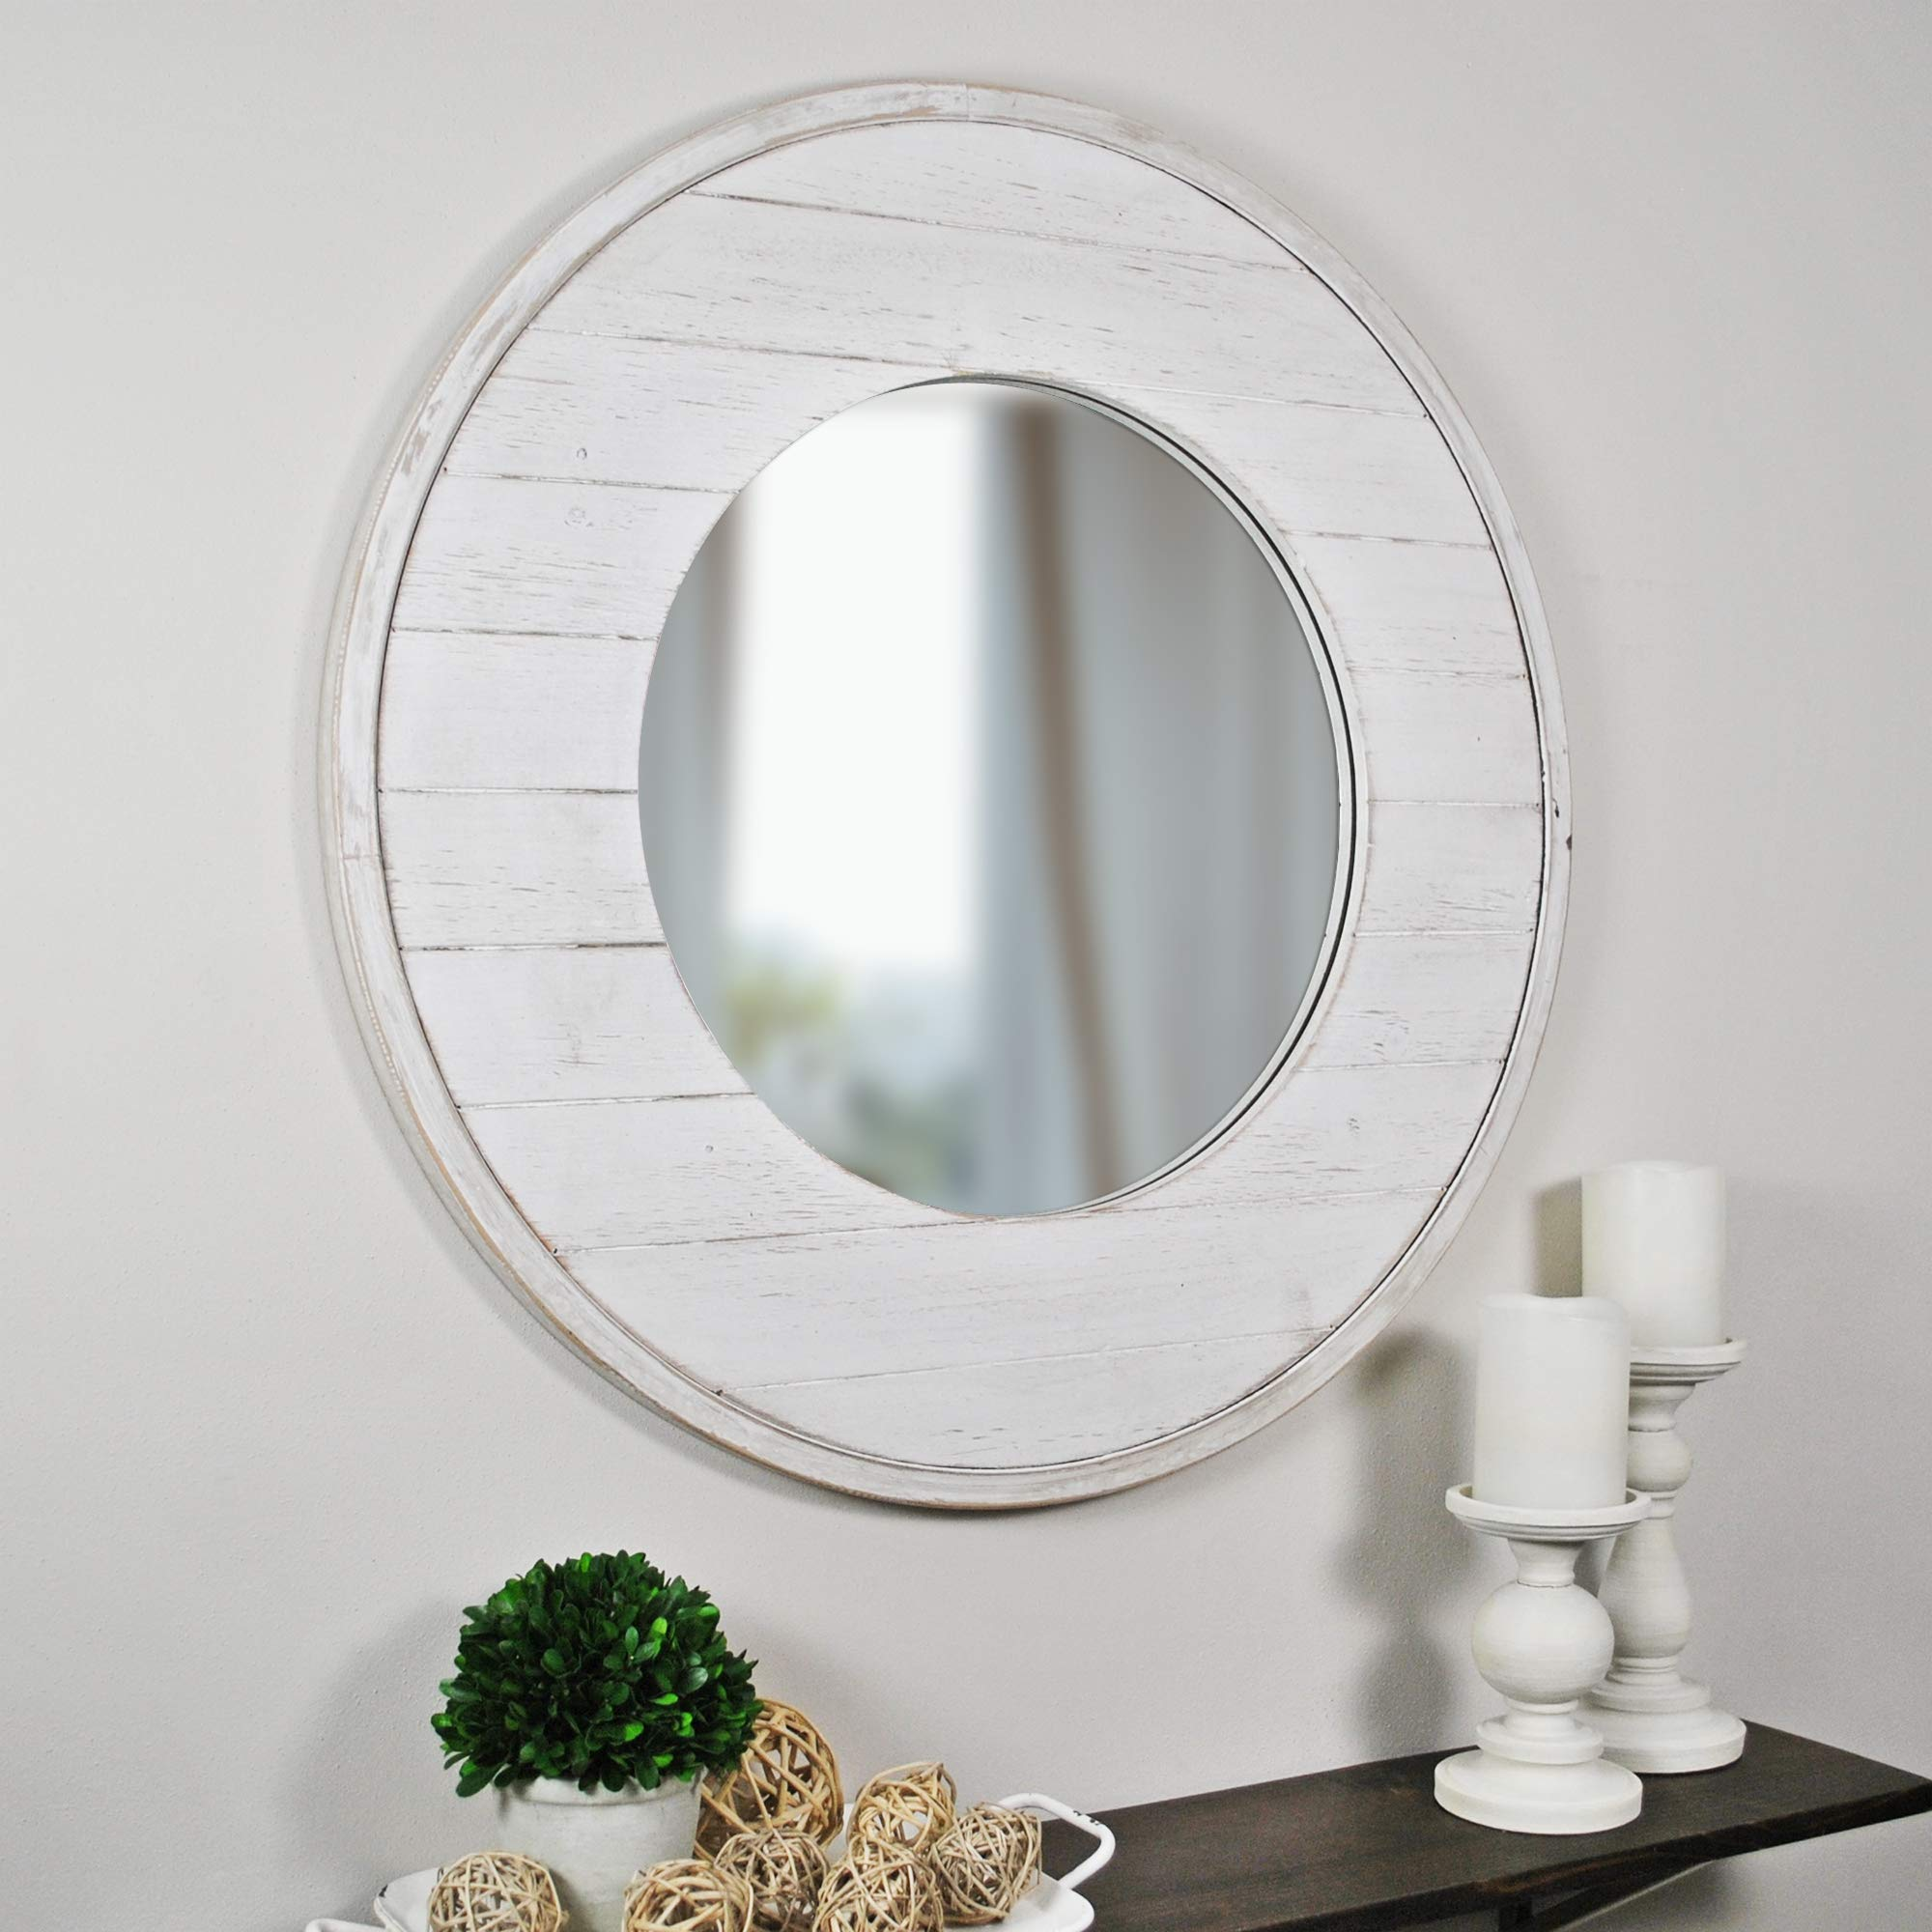 FirsTime & Co. 70021 Ellison Shiplap Accent Wall Mirror, 27'', Aged White